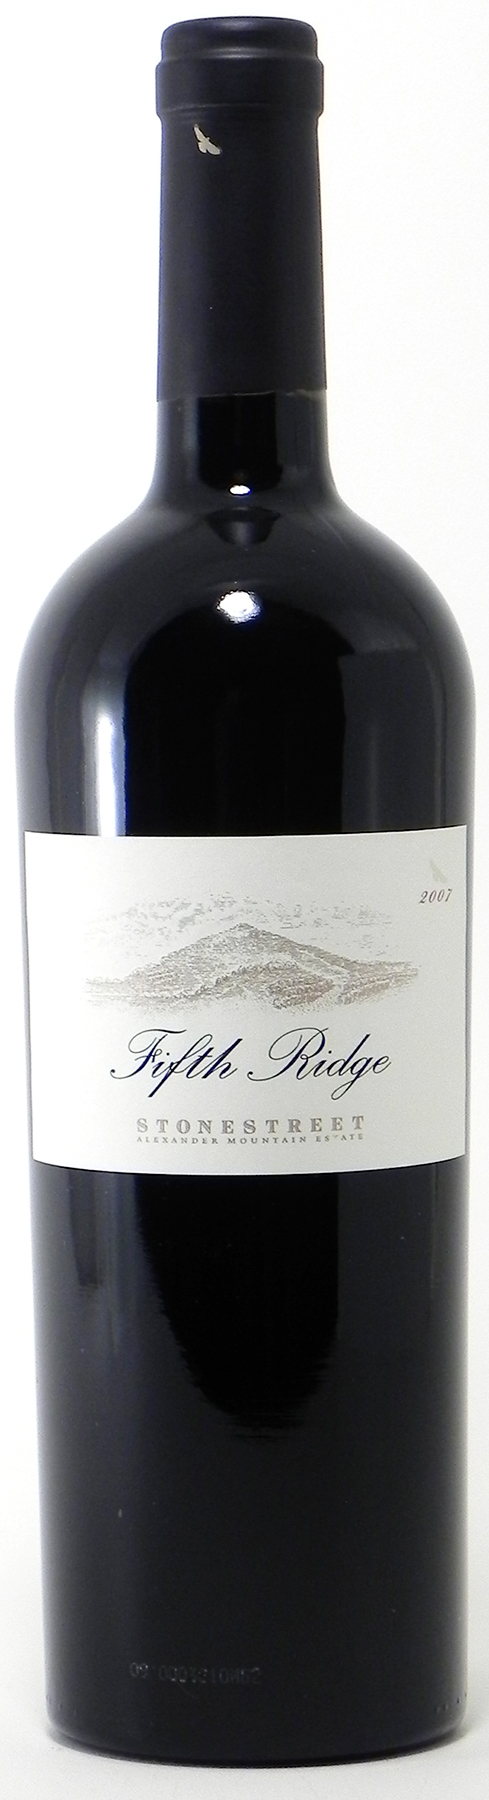 "2007 Stonestreet ""Fifth Ridge"" Red Blend"